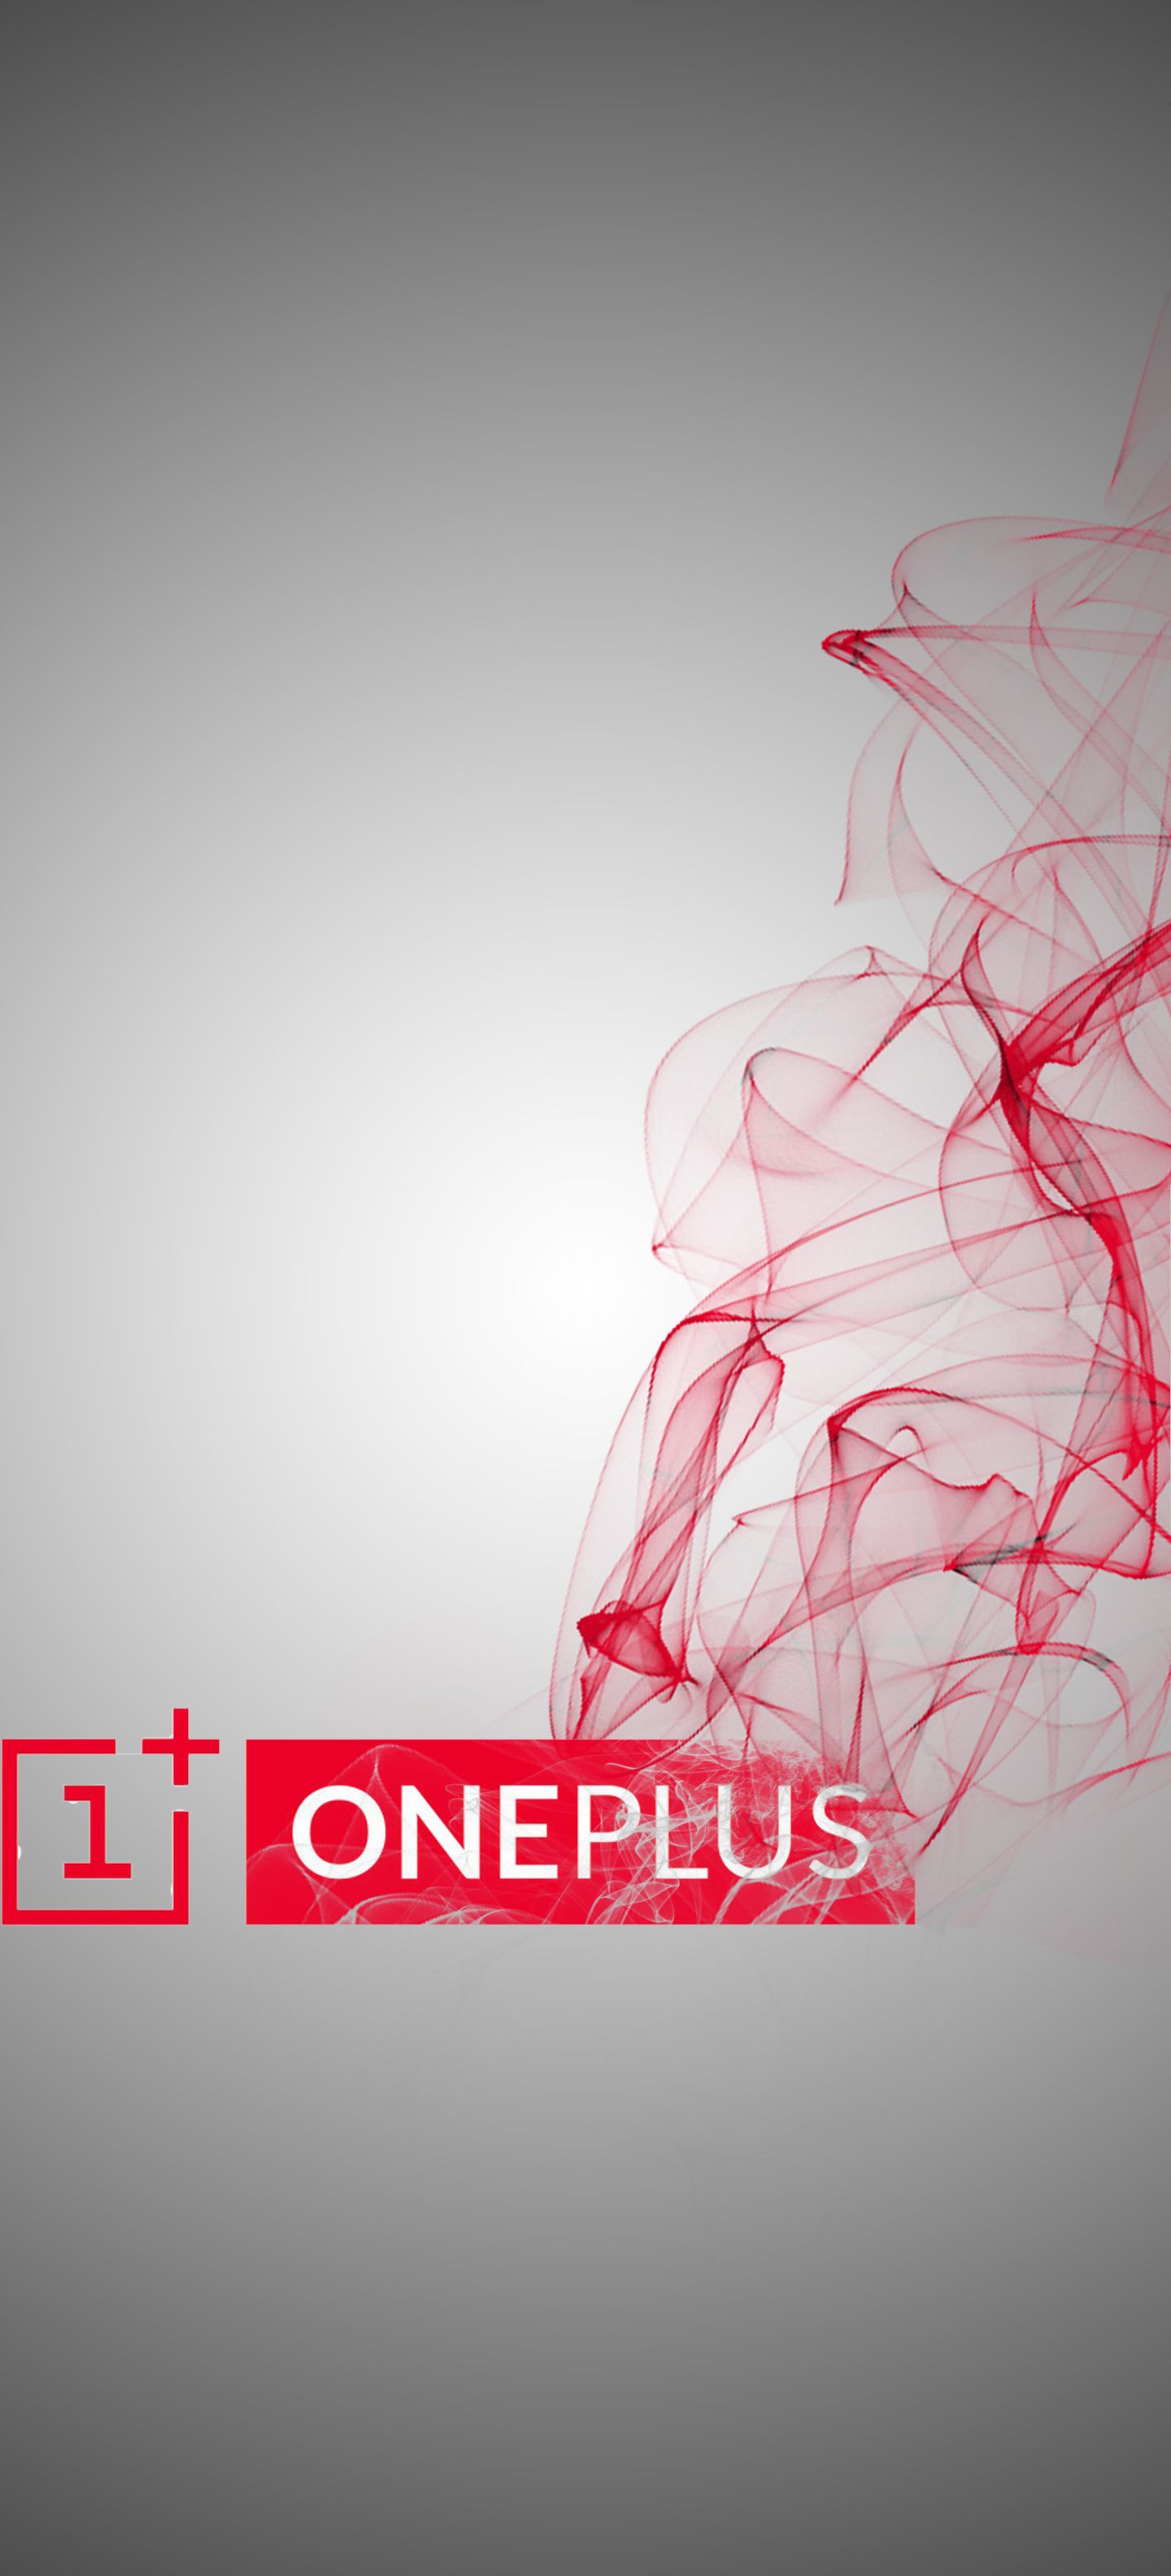 Oneplus Wallpaper.jpg